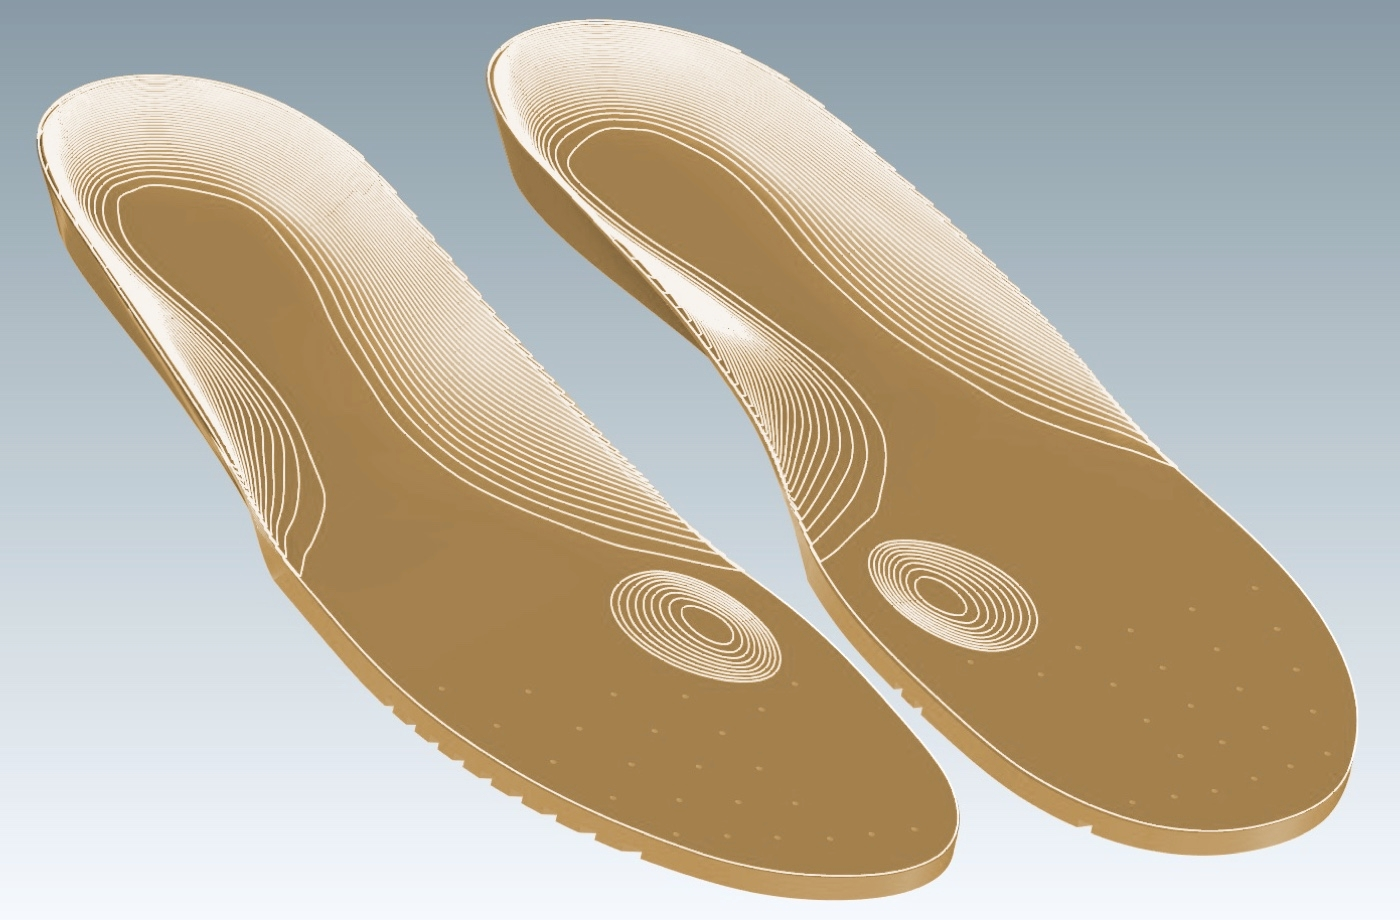 Insolia Flex Molded Into a Customer's Insole